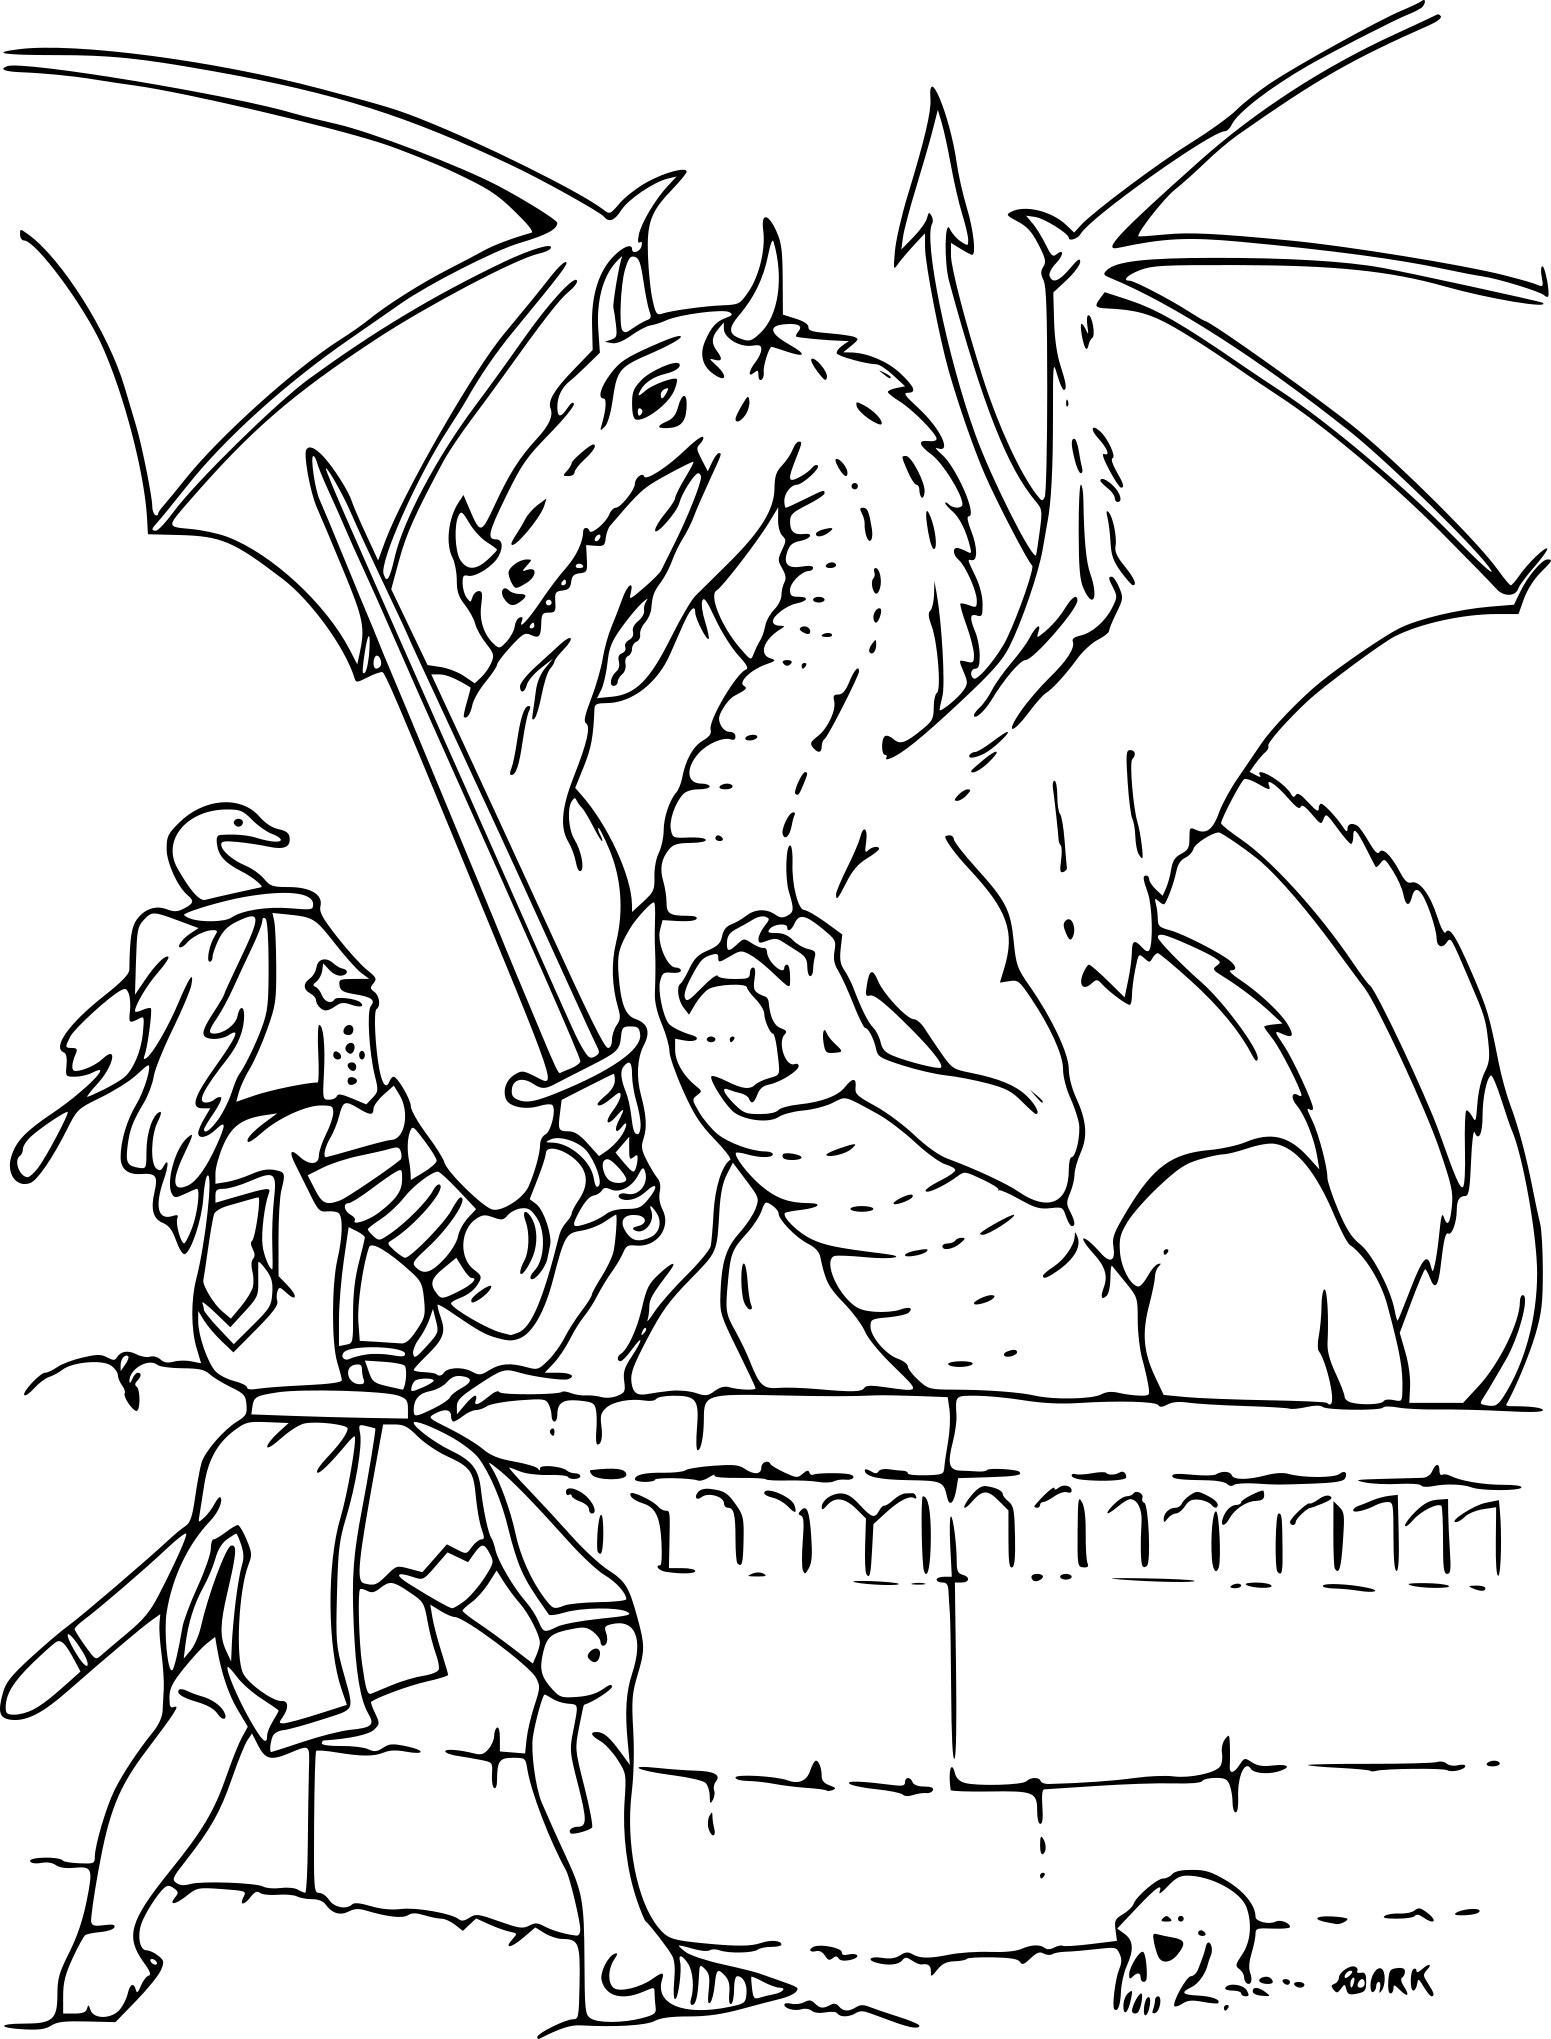 Coloriage Chevalier Dragon Heraldry Crest Blue And Black Google